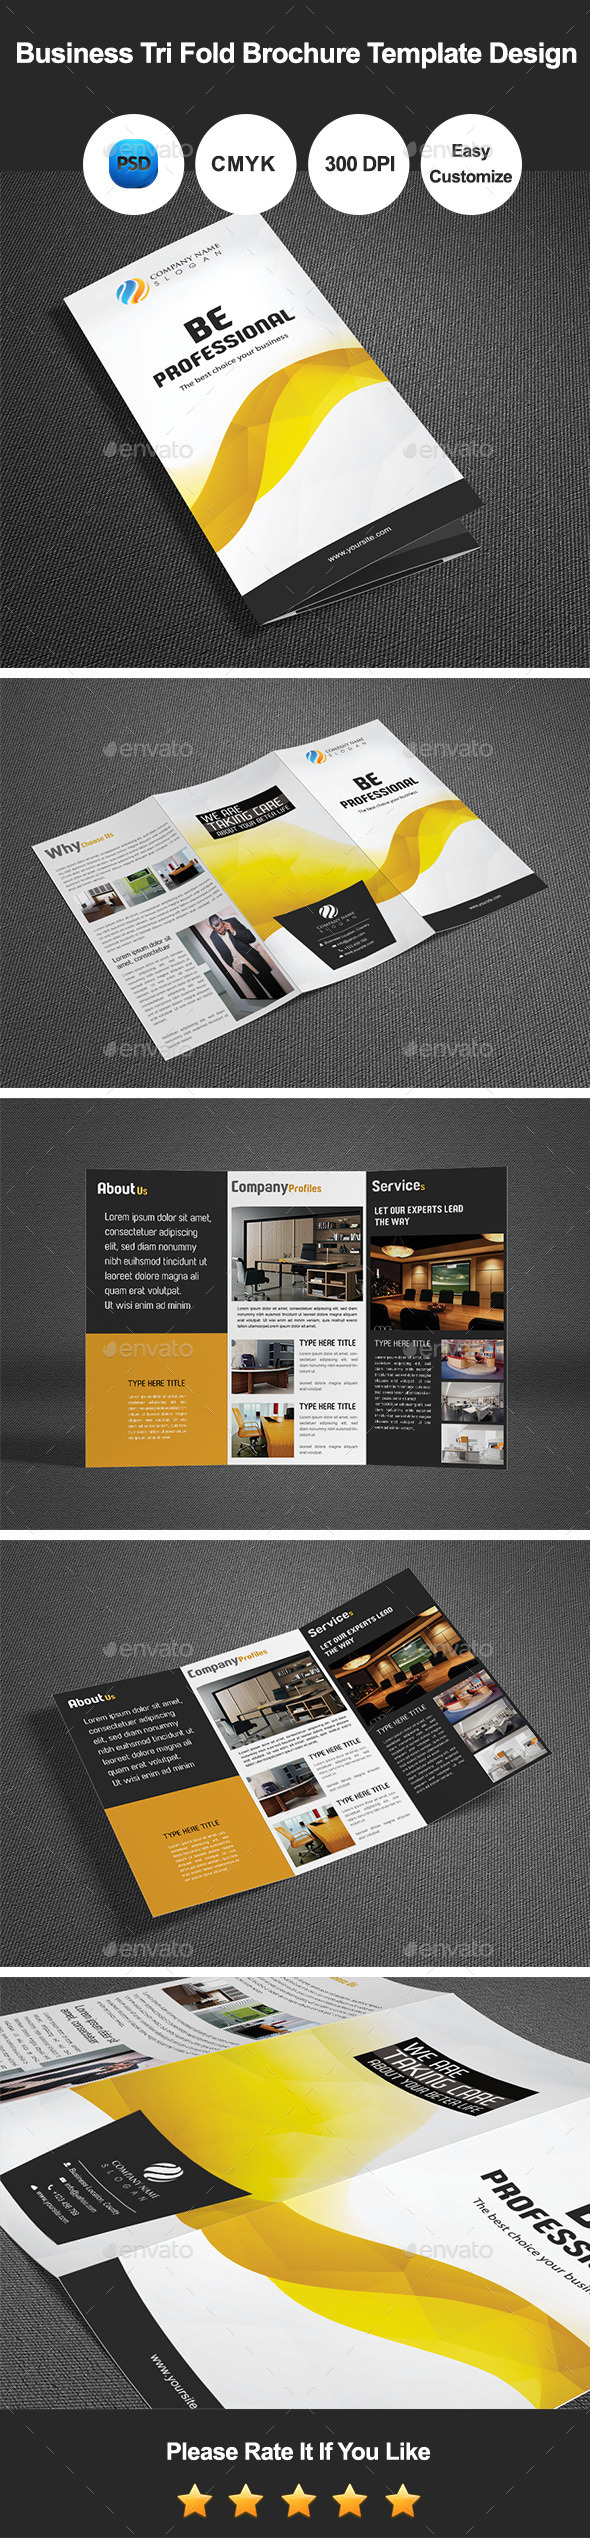 GraphicRiver Business Tri Fold Brochure Template Design 9684452